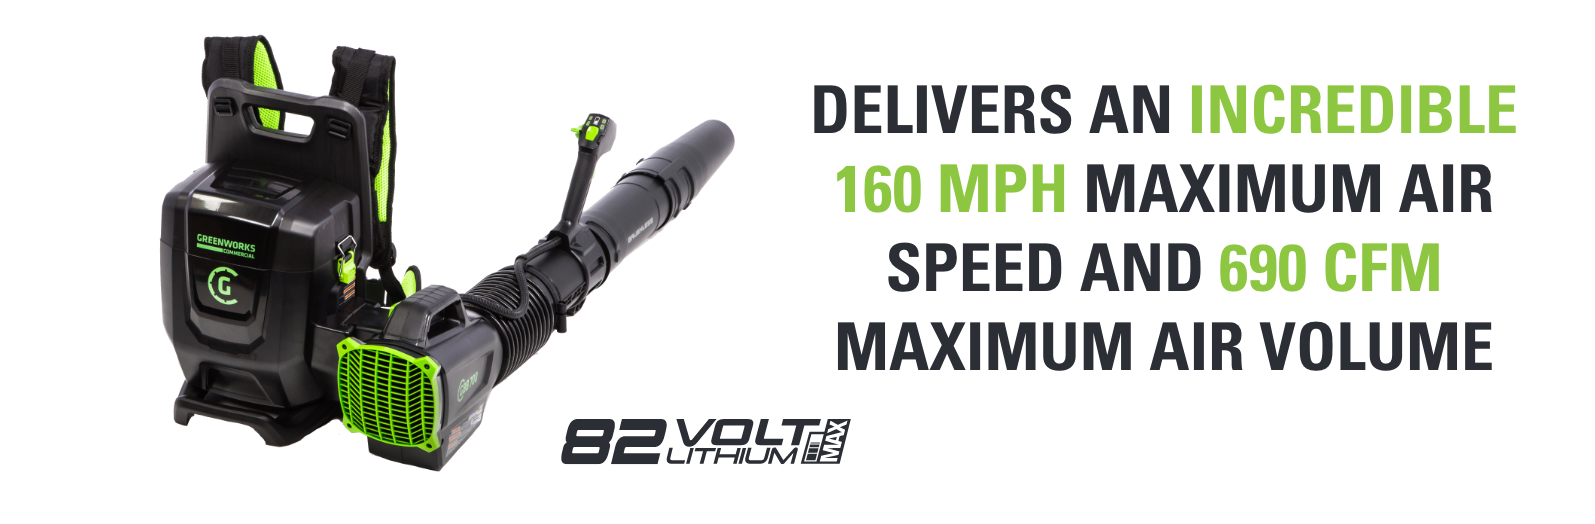 82V Backpack Blower | Greenworks Commercial